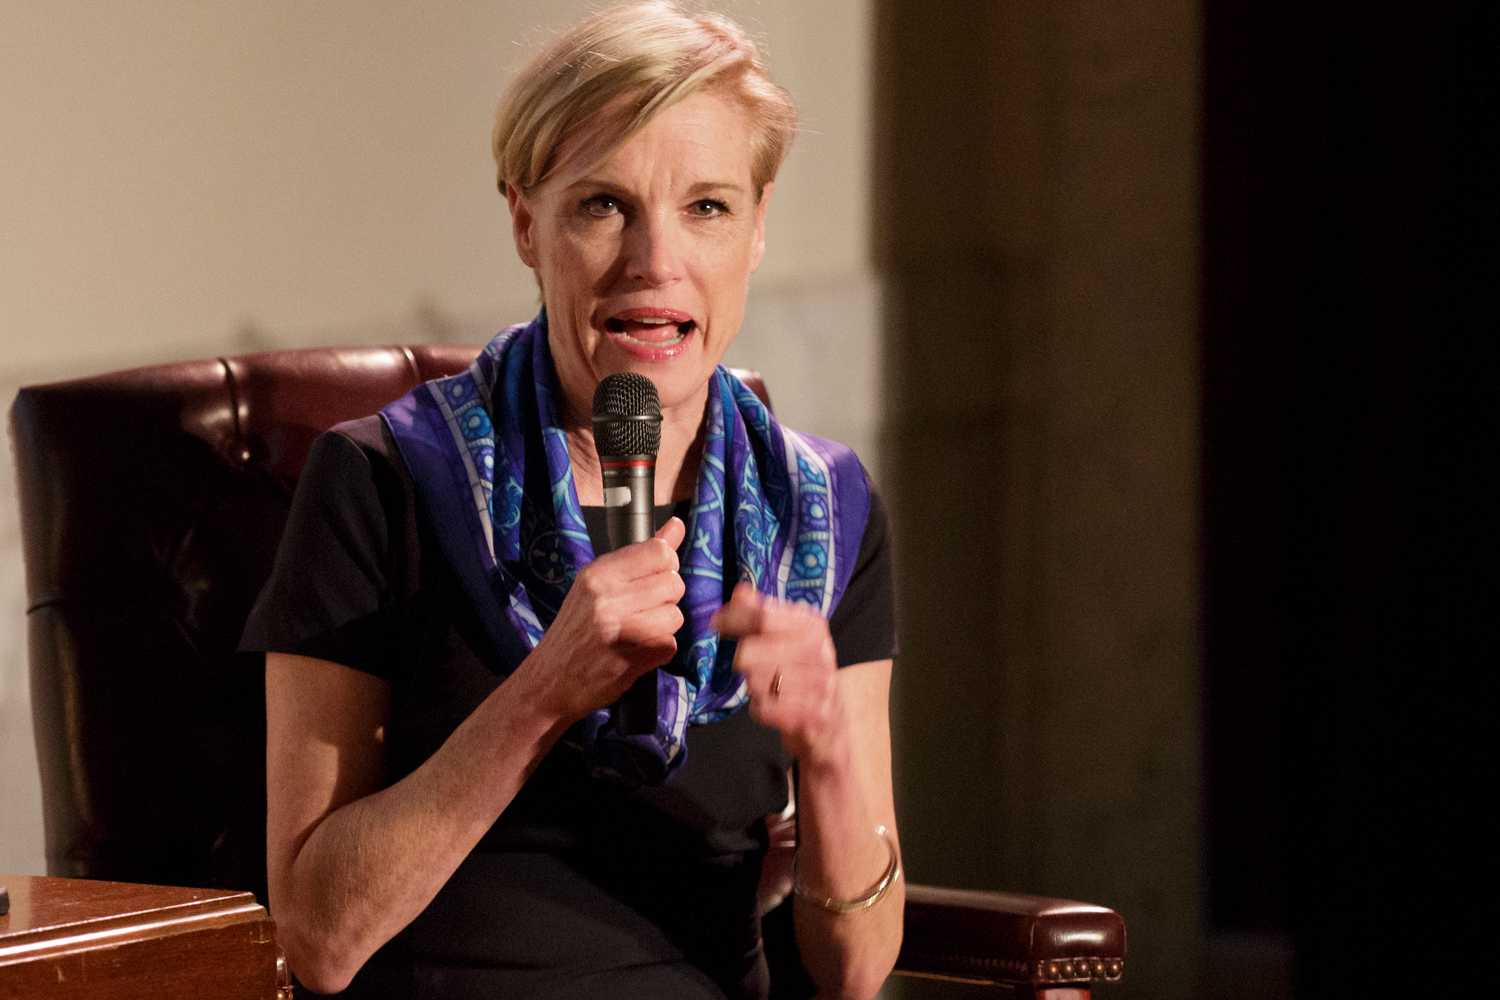 Planned Parenthood President Cecile Richards talks about her mother, former Texas governor Ann Richards, at the Carnegie Library Lecture Hall Wednesday night. (Photo by Thomas Yang | Visual Editor)